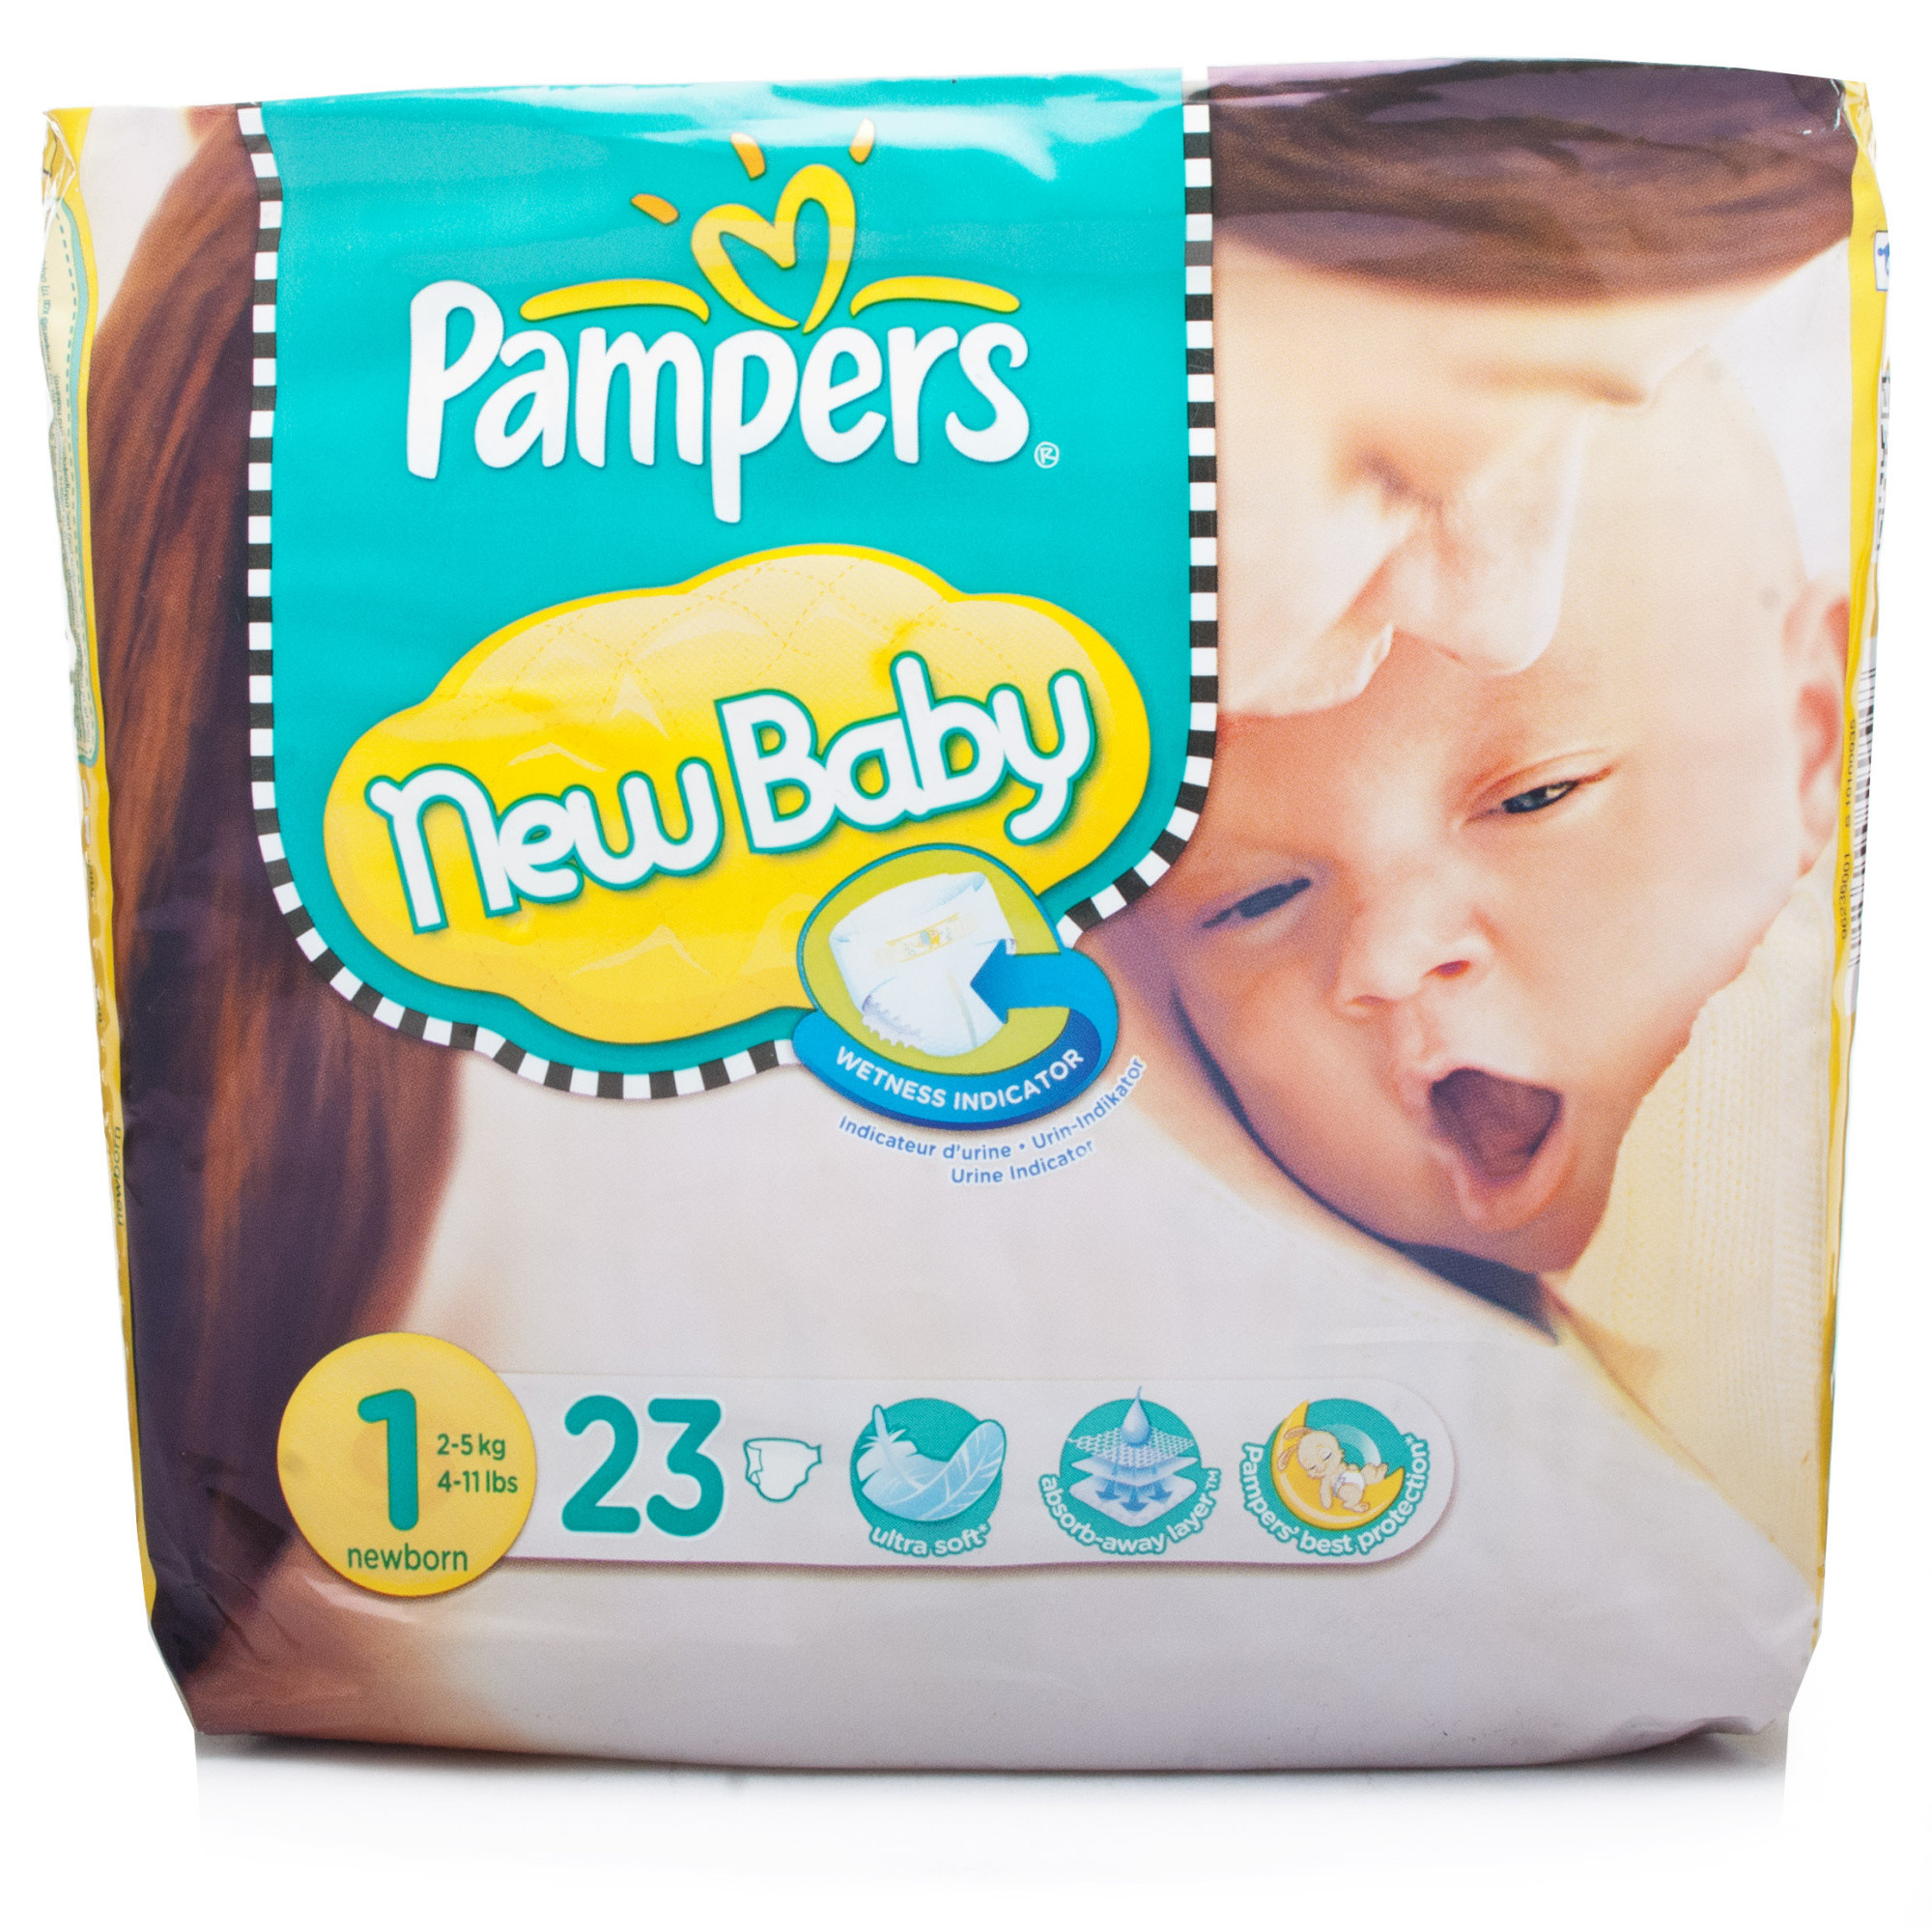 Pampers Newbaby Nappy